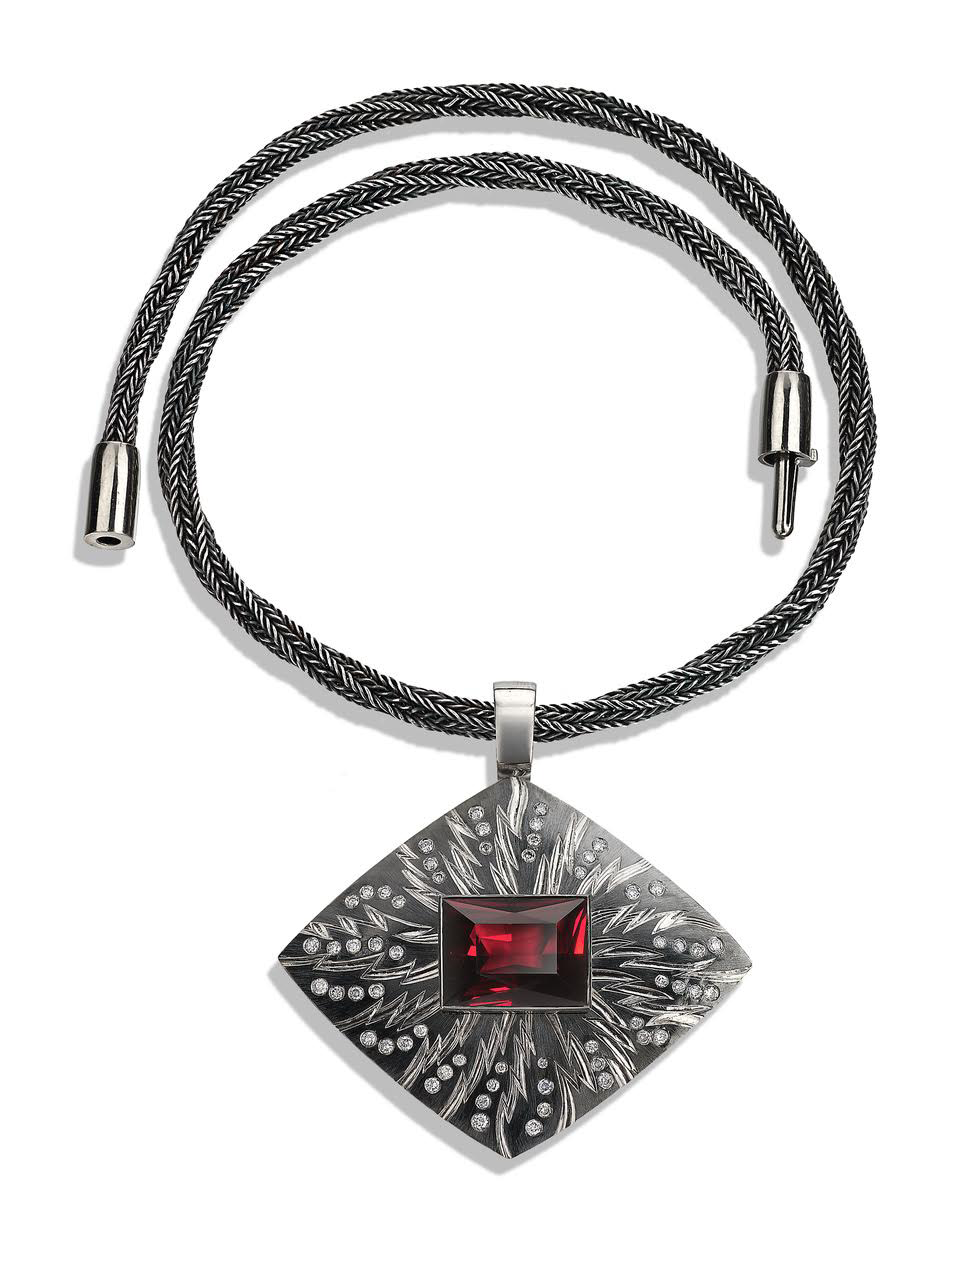 """<a href=""""/node/277"""">""""PORTAL"""" Pendent; 18ct white gold, hand engraved and carved, Set with 58 grey diamonds / rectangular Garnet 18.77cts. Part coloured in Black Rhodium. Hand knitted """" Sacred Knot"""" chain in fine silver oxidised black' White Gold clasp / can be worn separatel</a>"""